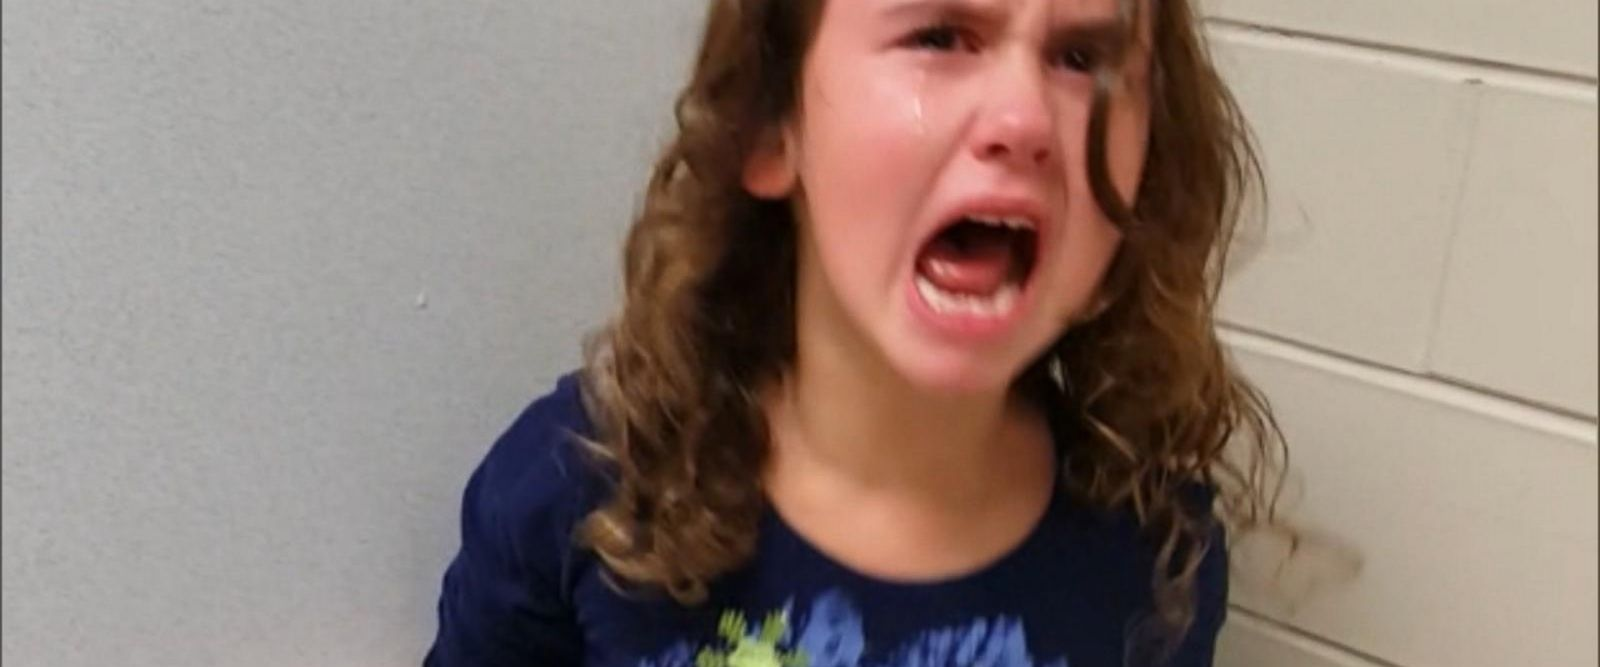 VIDEO: Parents fear for young daughter's safety as her behavior changes dramatically: Part 1